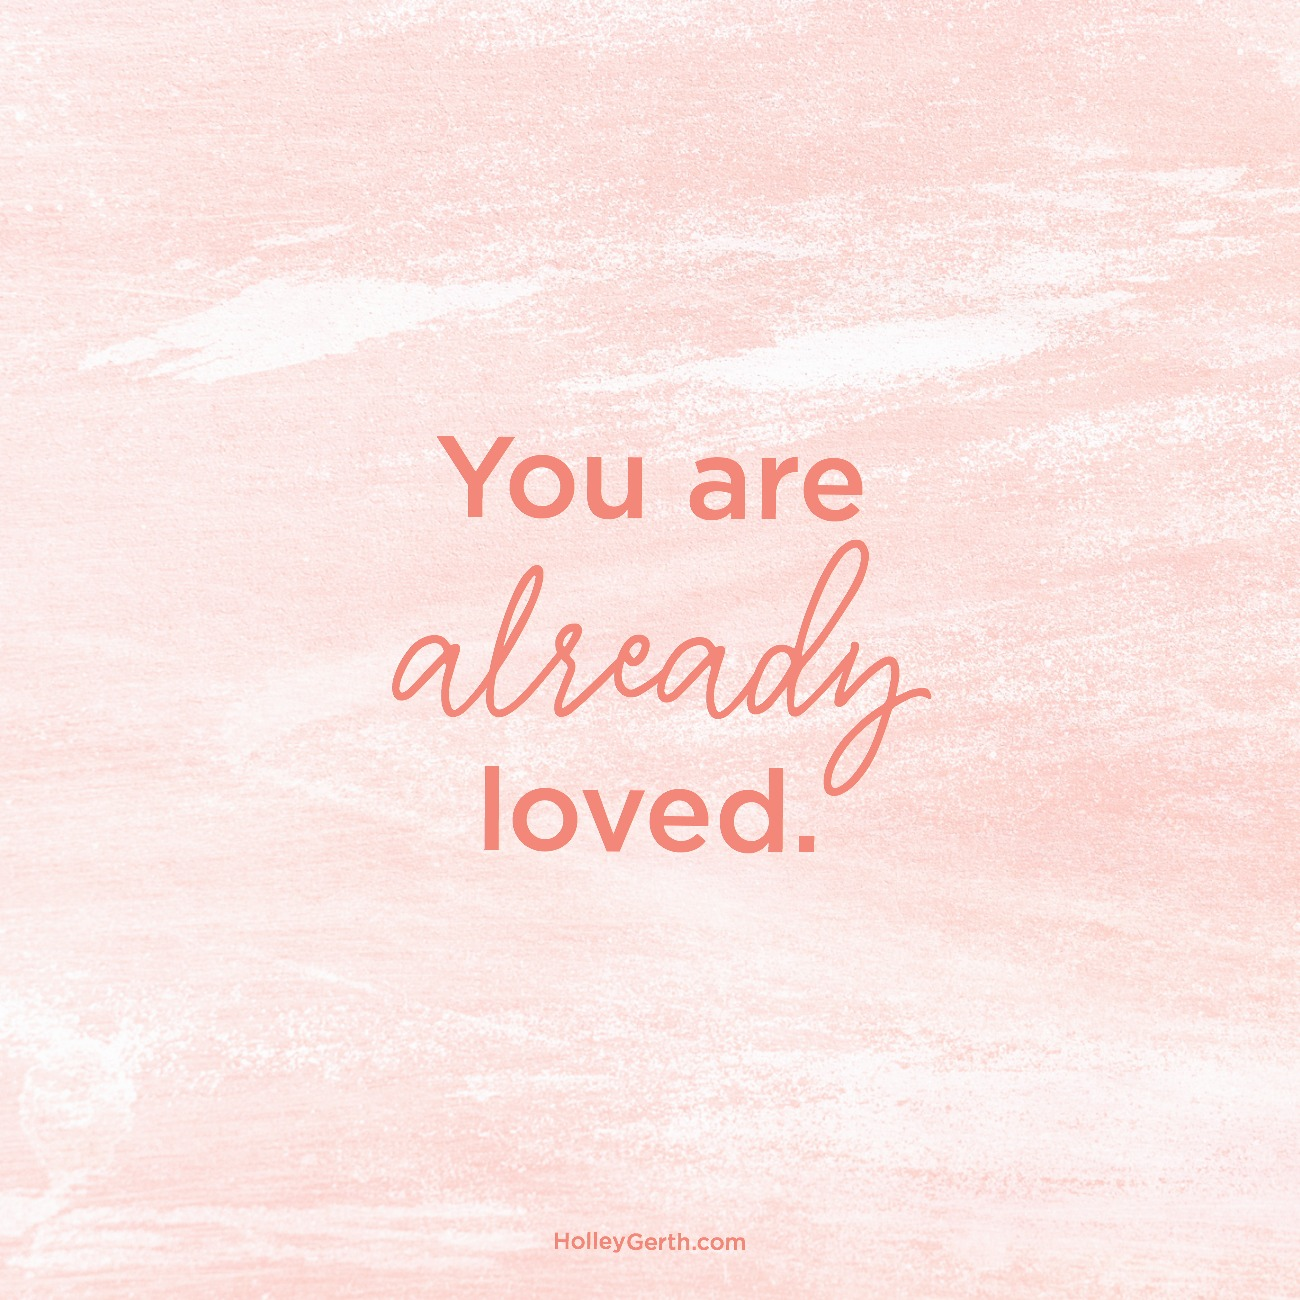 You are already loved.